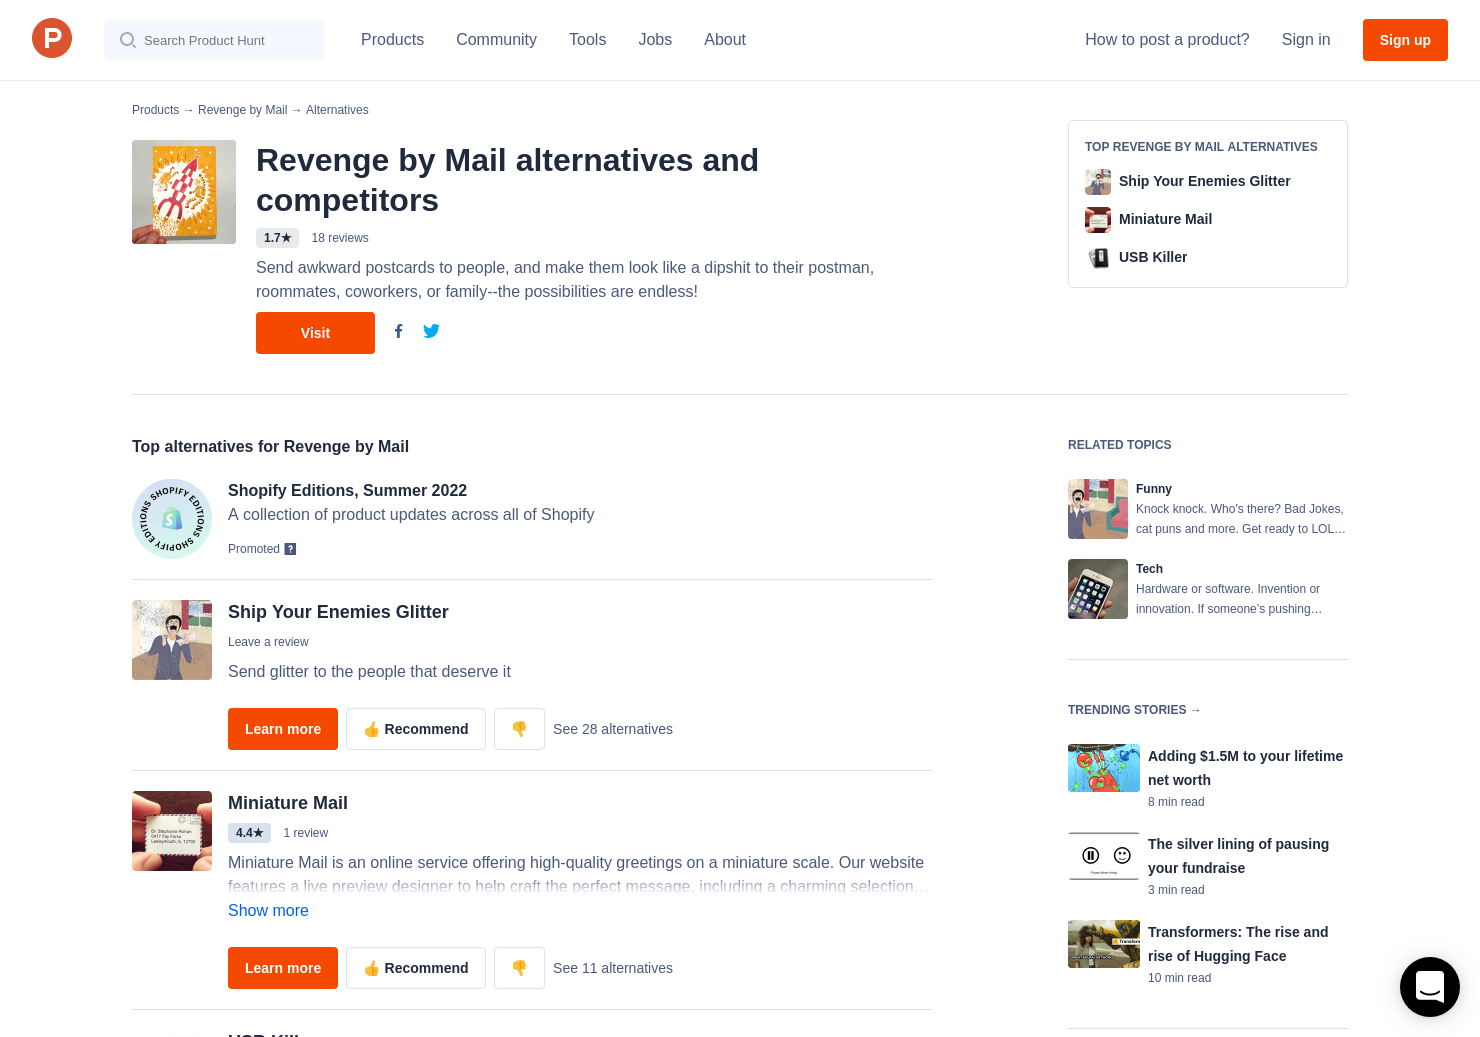 18 Alternatives to Revenge by Mail | Product Hunt